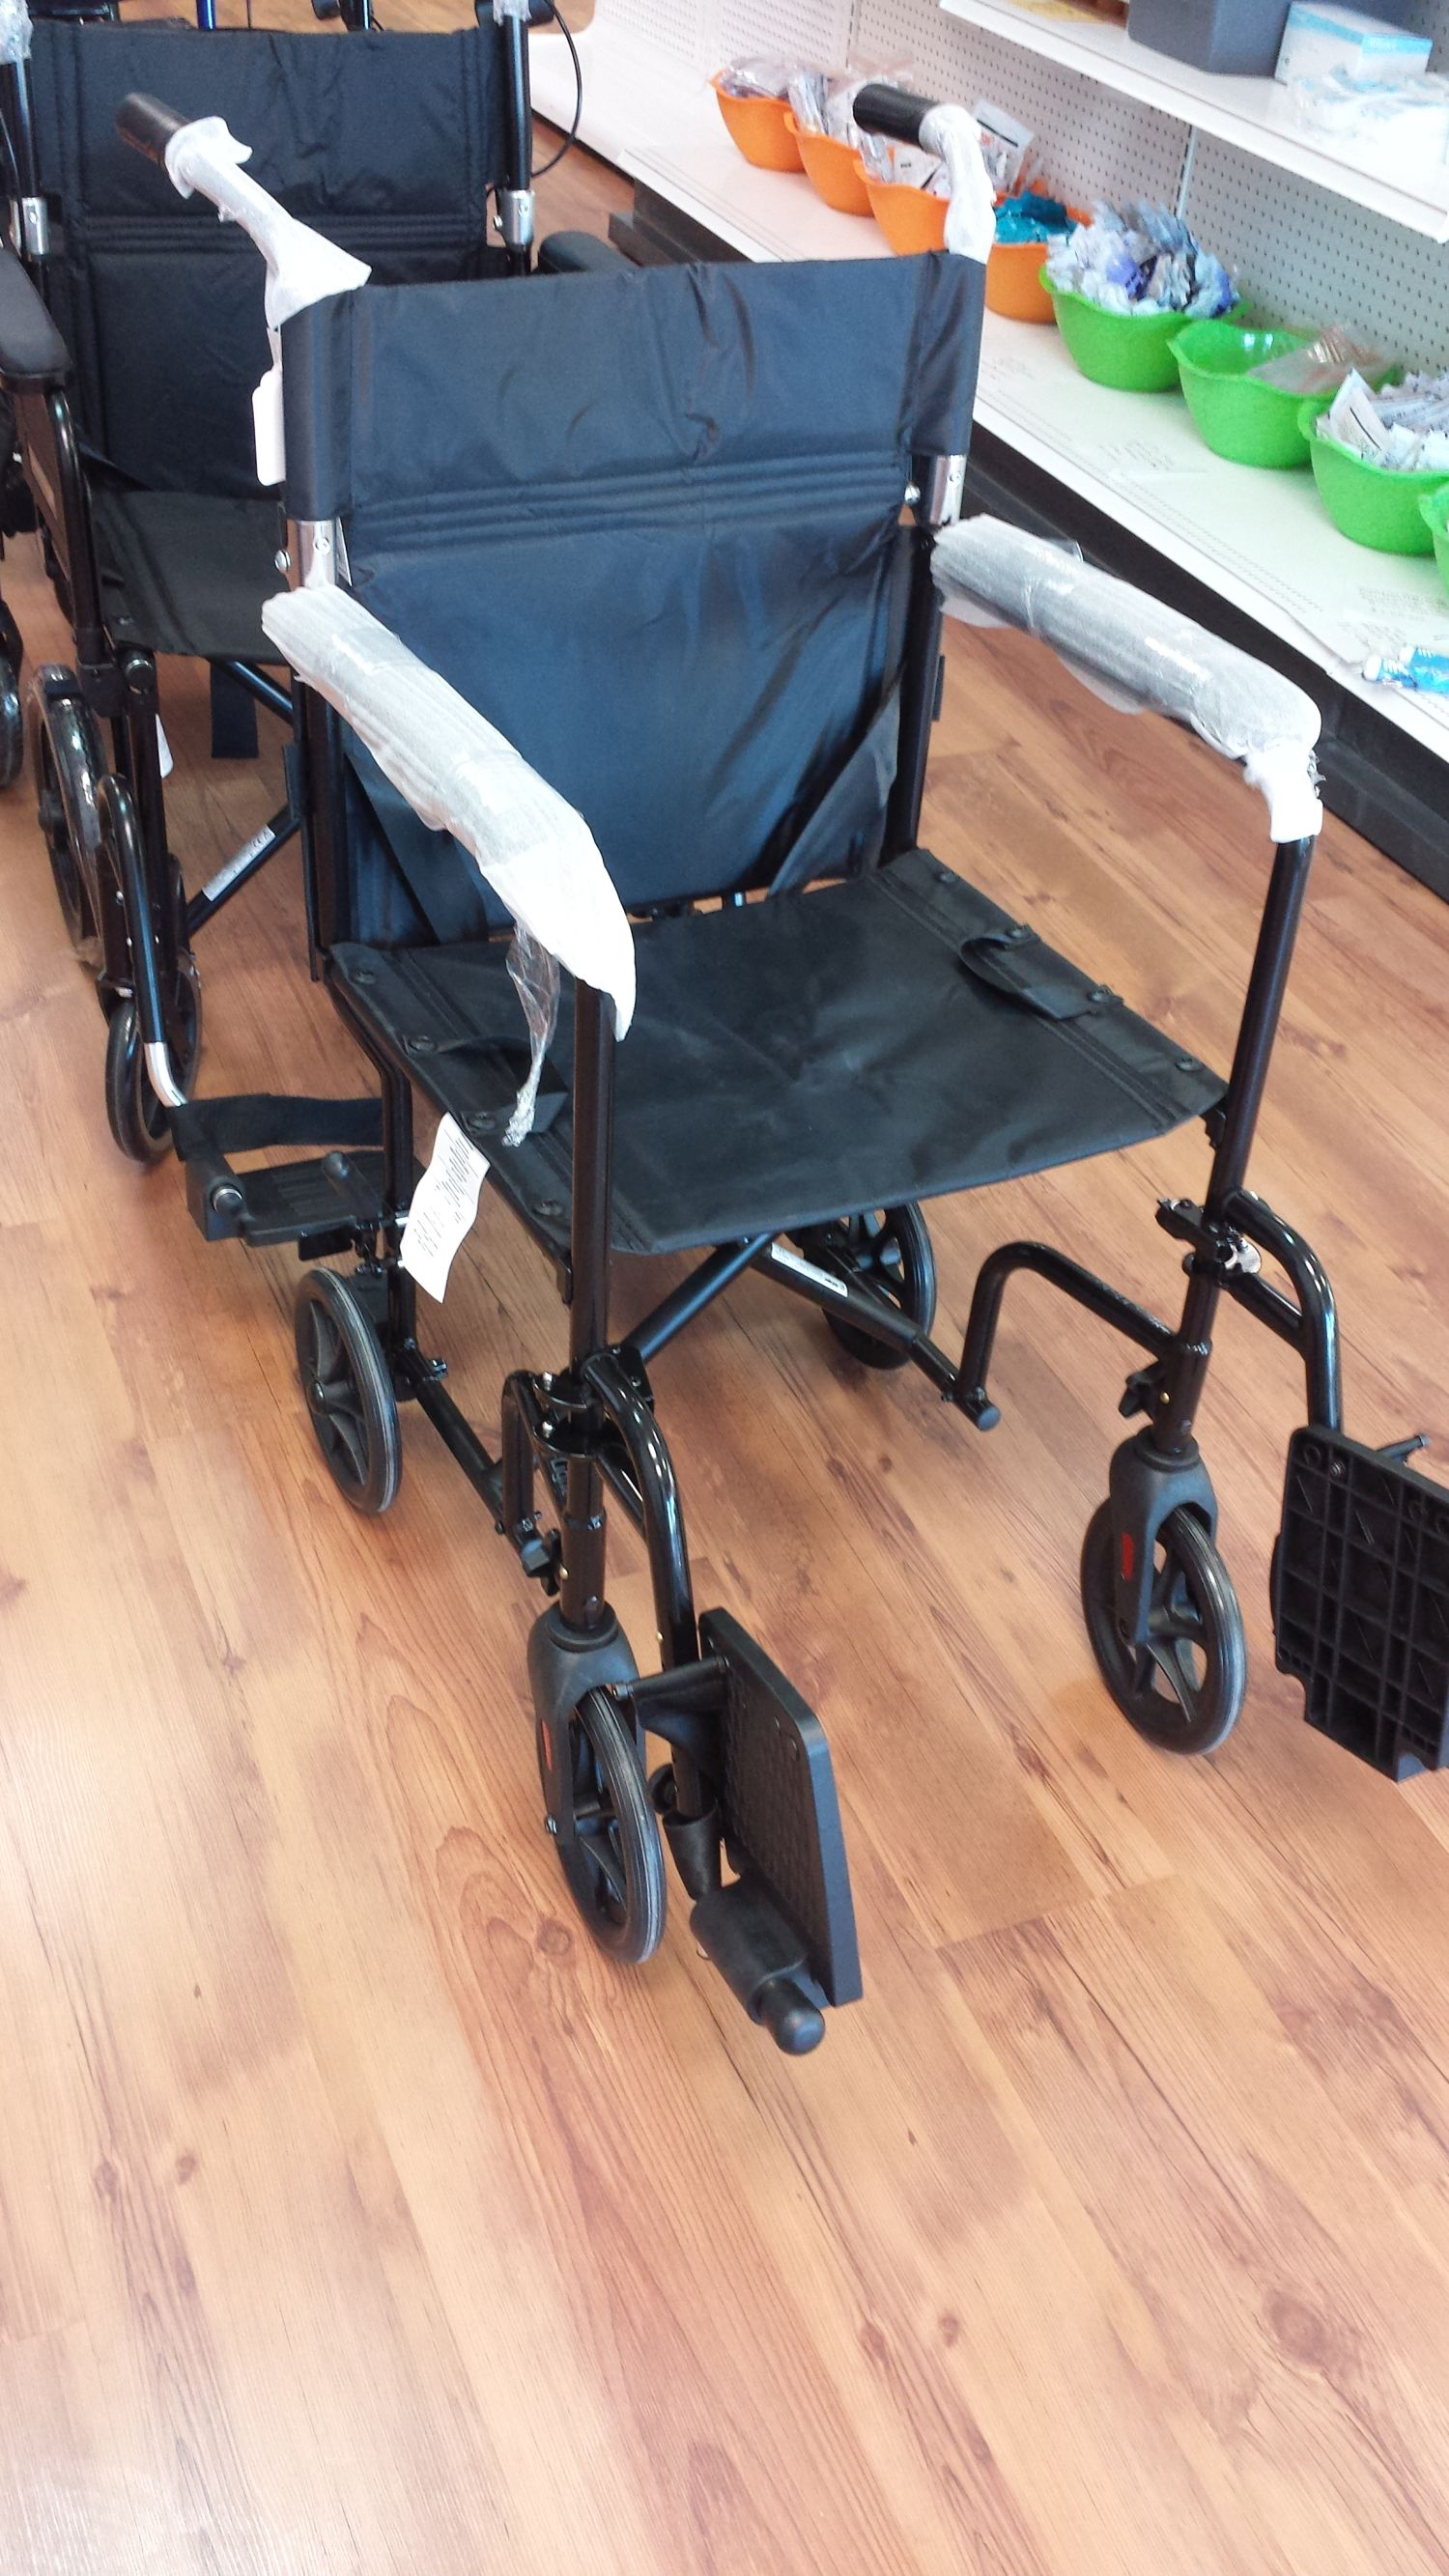 Folding Transport Chair, wheelchairs